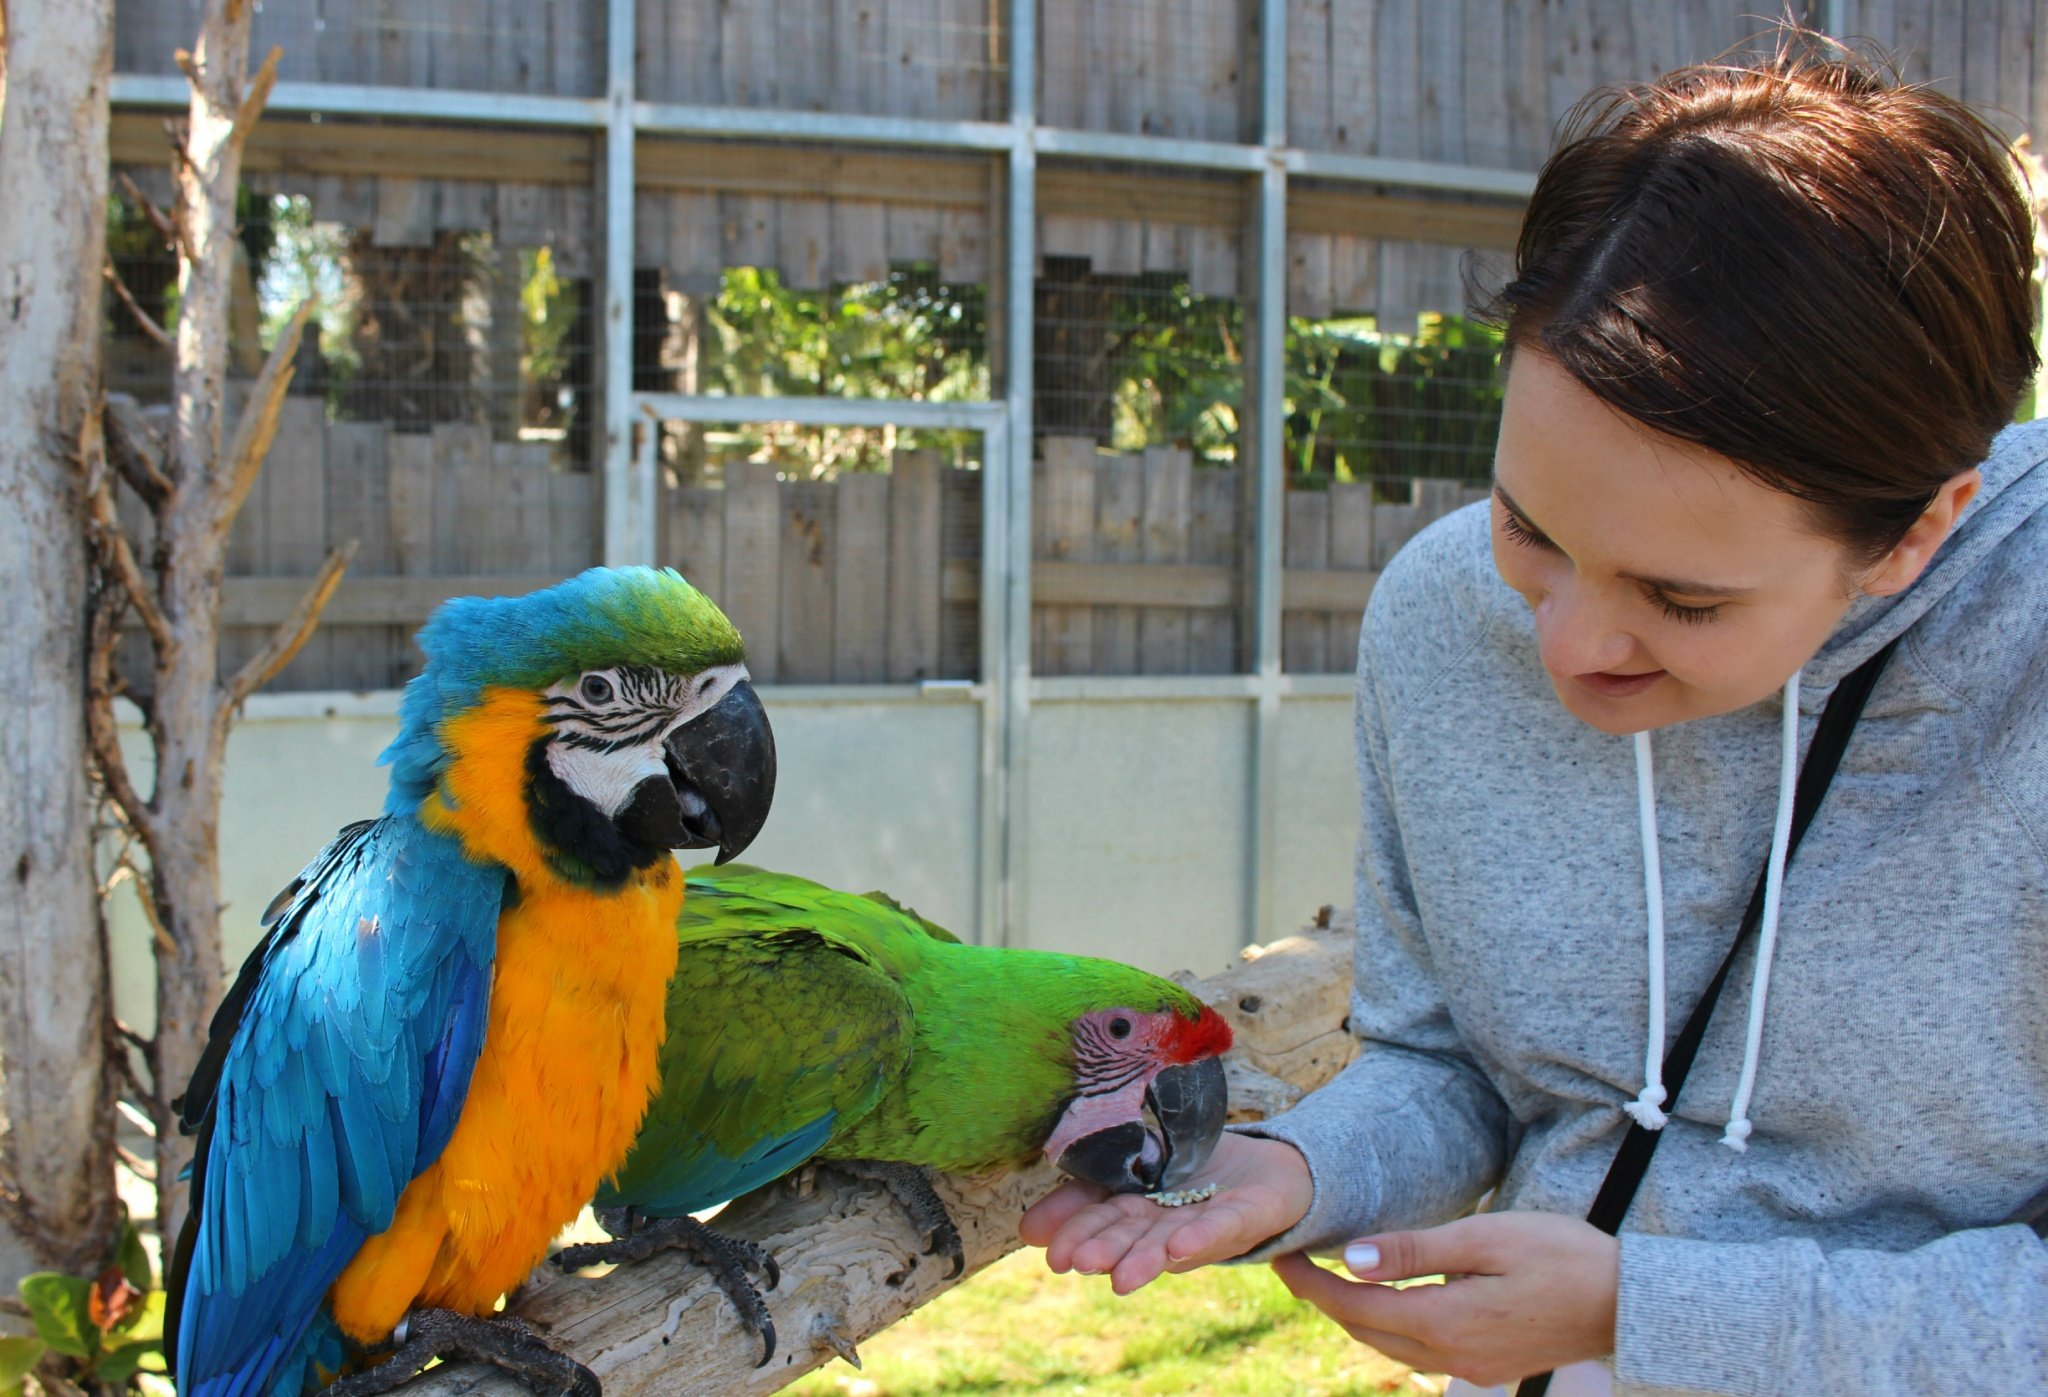 Feeding birds at Jardin del Papagayo in Benicarlo, Spain